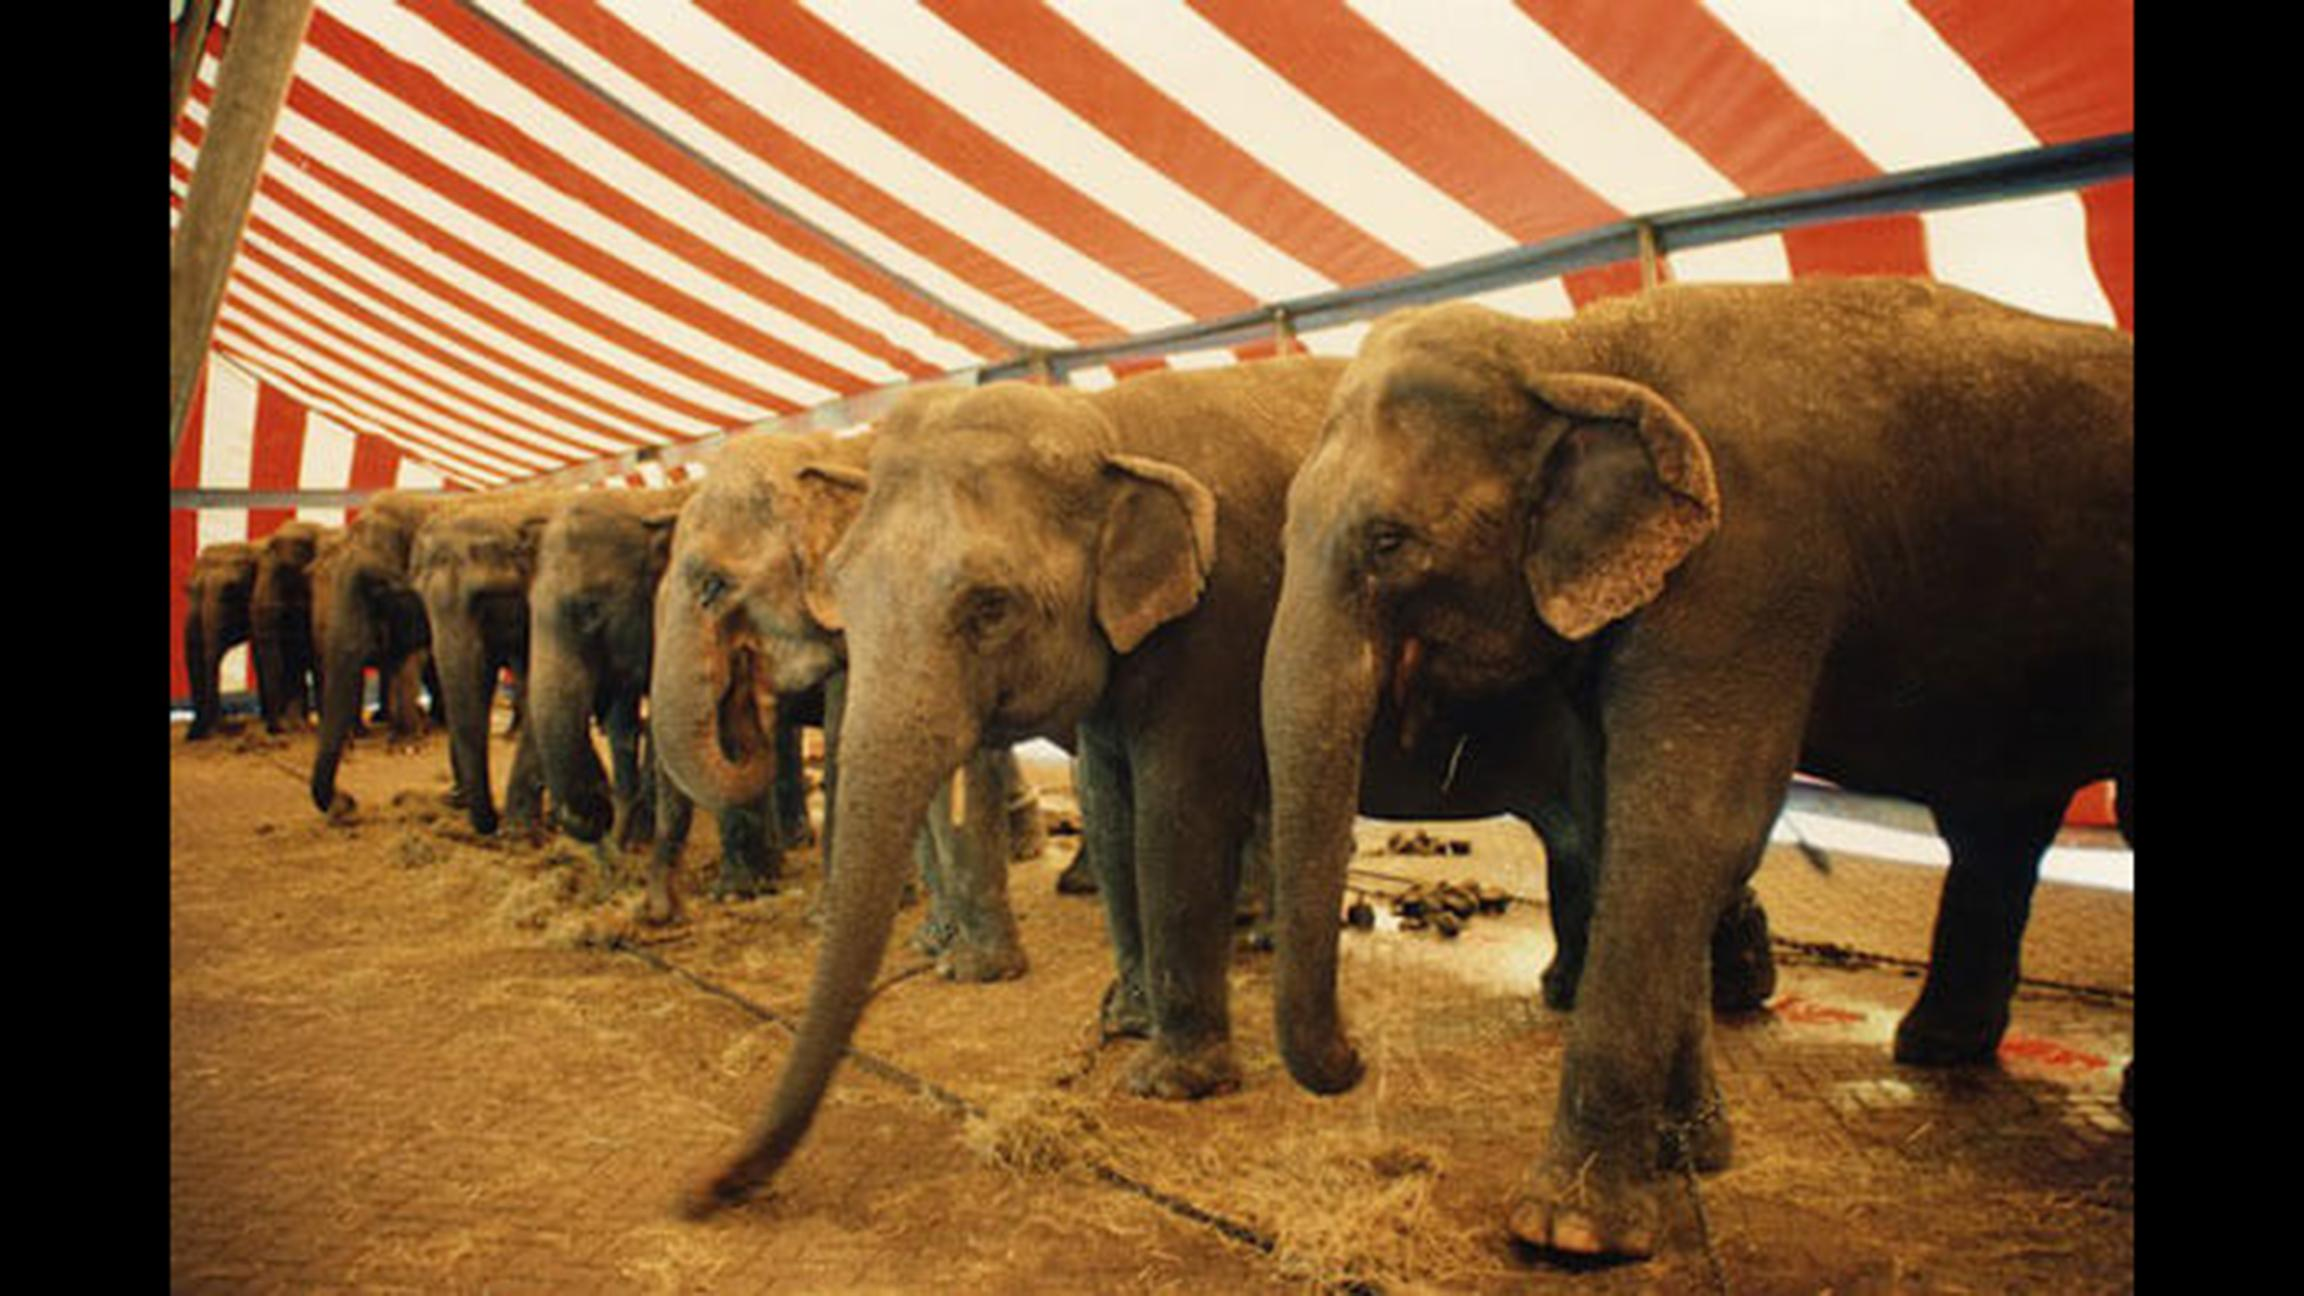 The USDA has cited elephant exhibitors that perform in Illinois for violations of the federal Animal Welfare Act. (Courtesy of PETA)